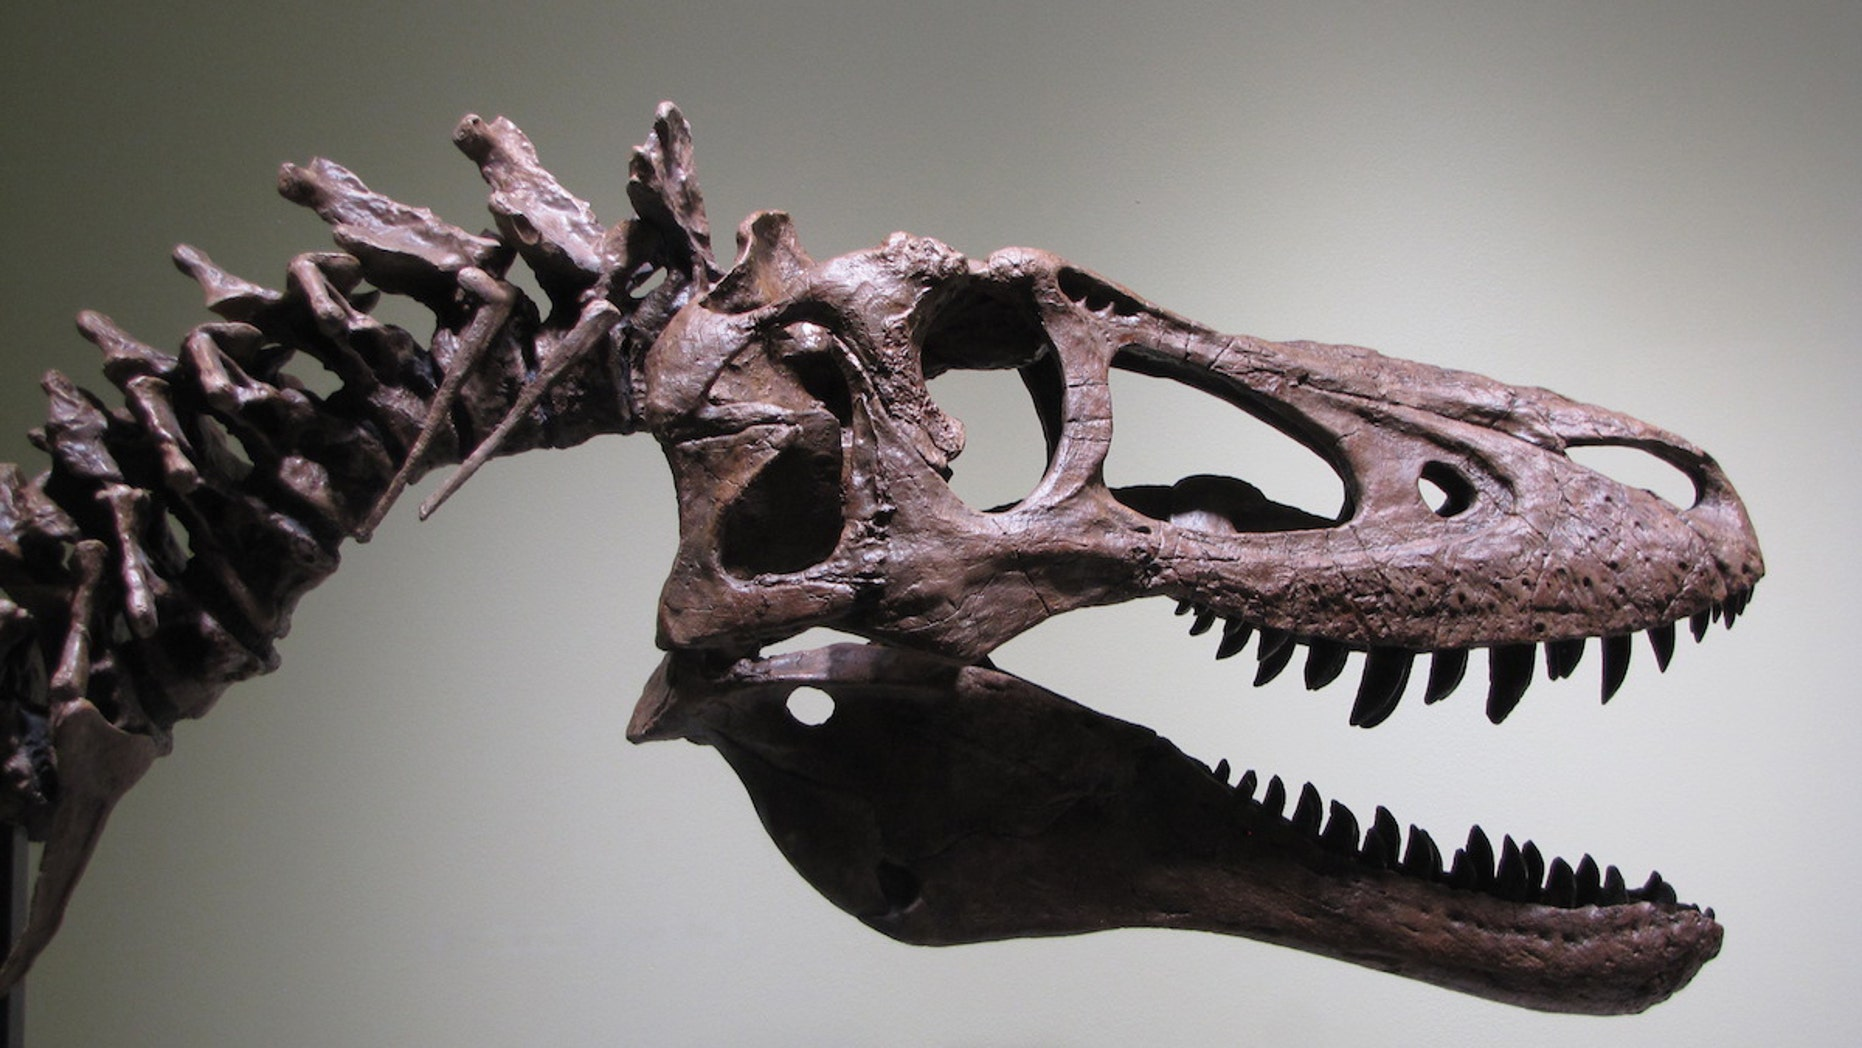 A reconstruction (that is, not the actual skeleton) of the baby <i>Tyrannosaurus rex</i> that is now for sale on eBay.